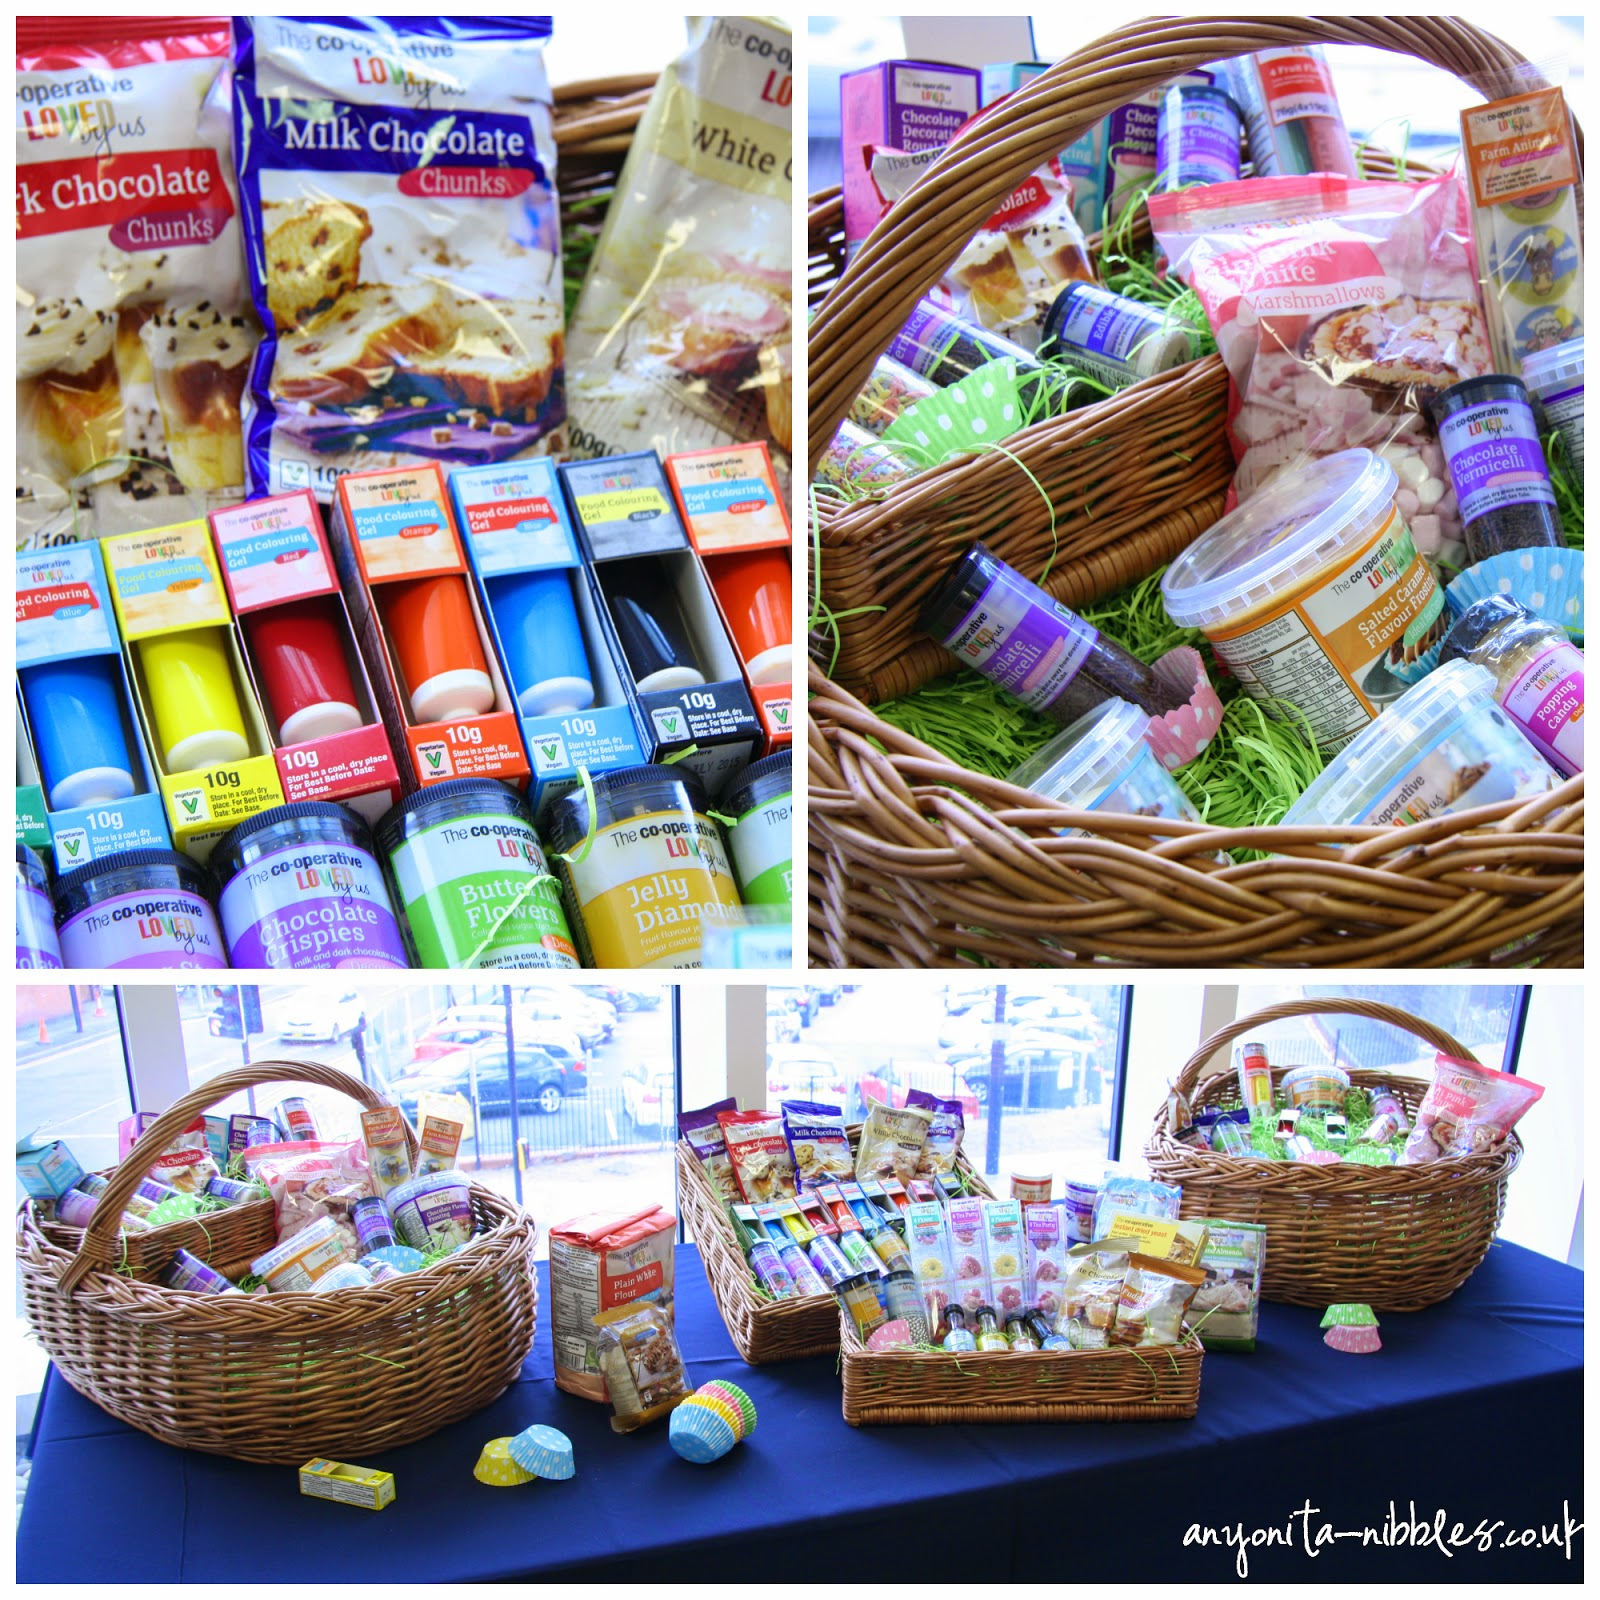 Amazing Easter products from The Cooperative | Anyonita-nibbles.co.uk